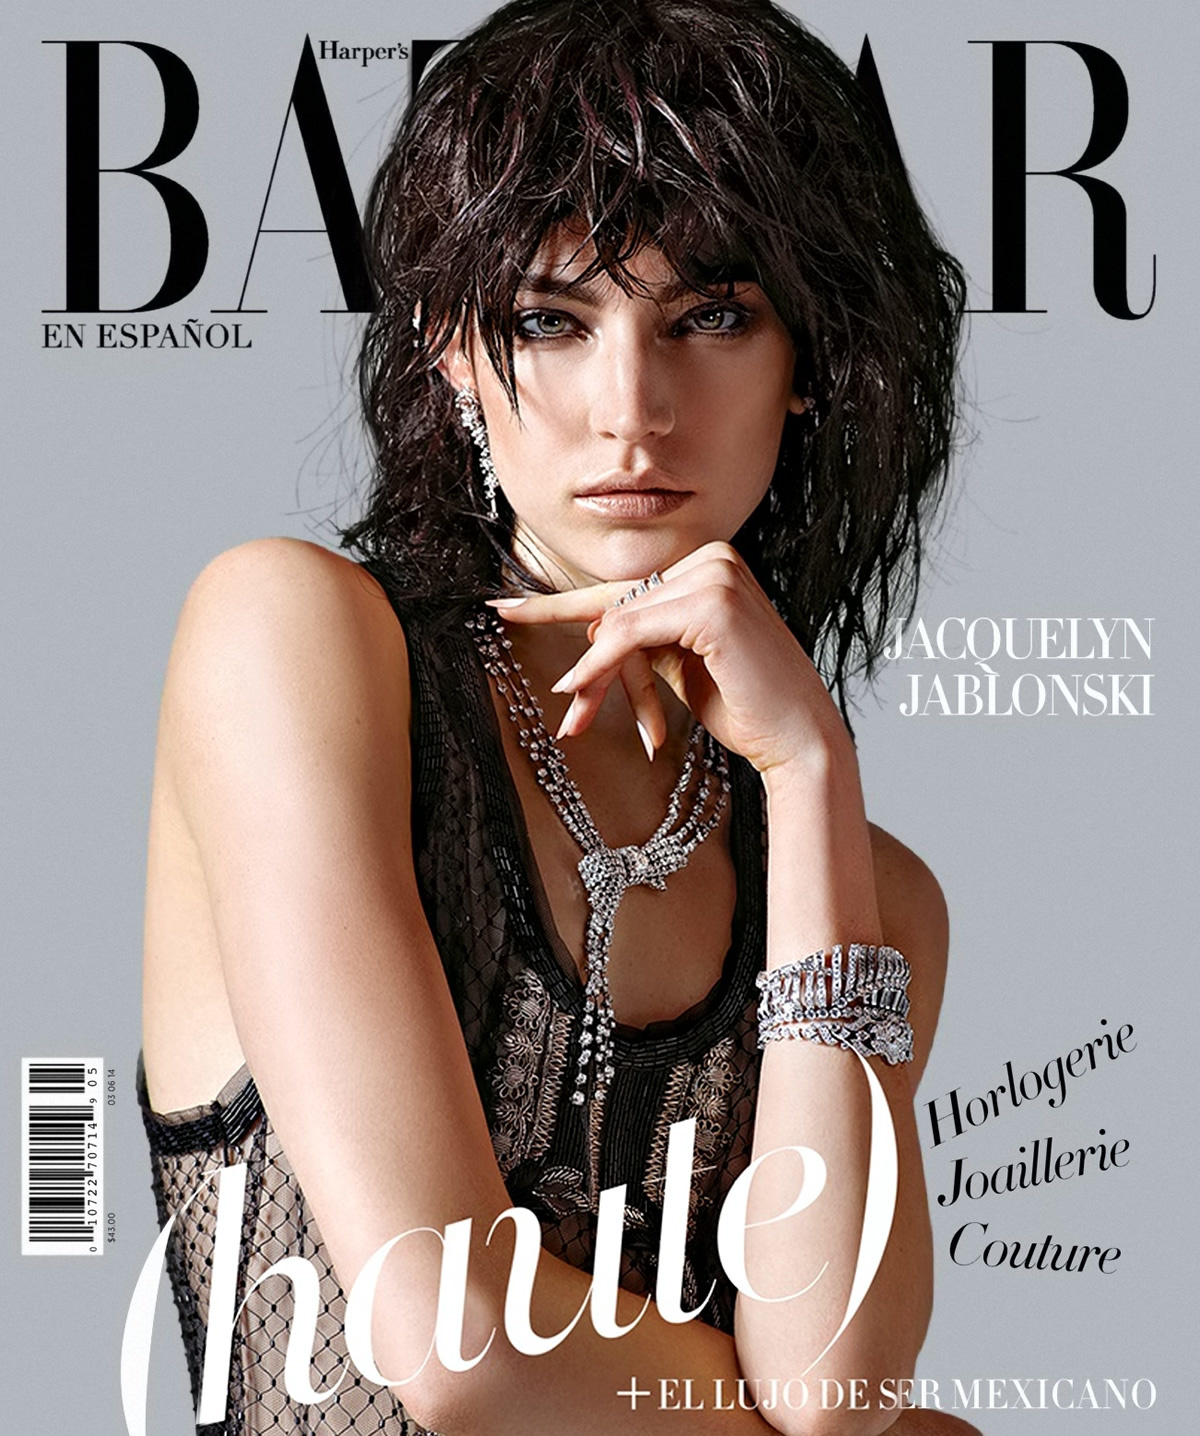 BAD: Jacquelyn Jablonski On Harper's Bazaar Spain